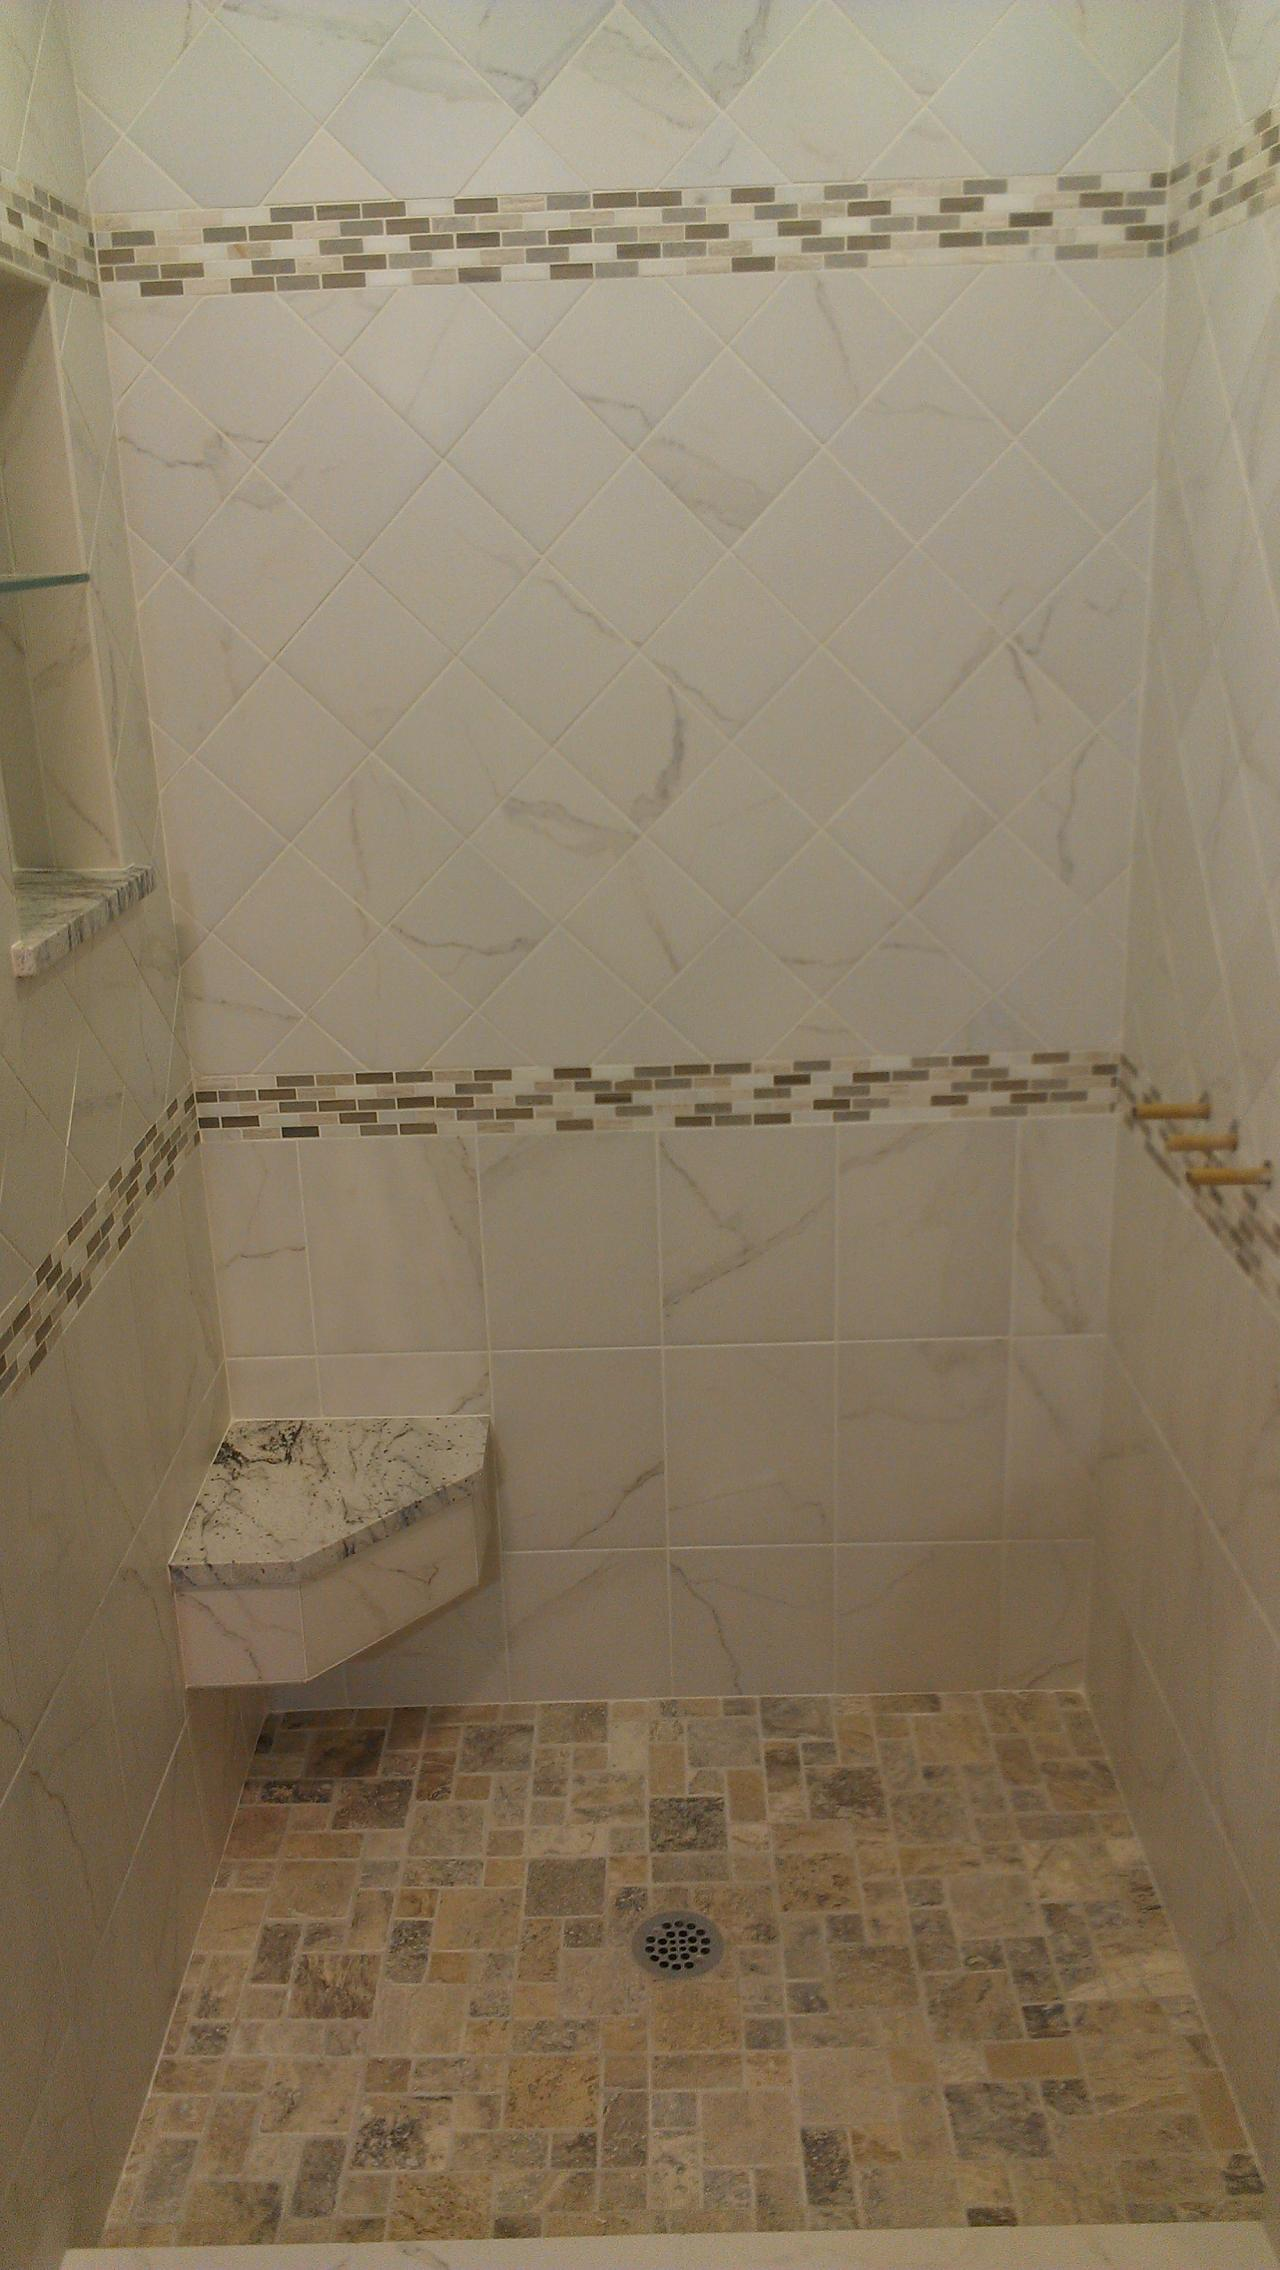 Nest homes construction lyndhurst bathroom design idea - Nest Homes Construction Floor And Wall Tile Designs